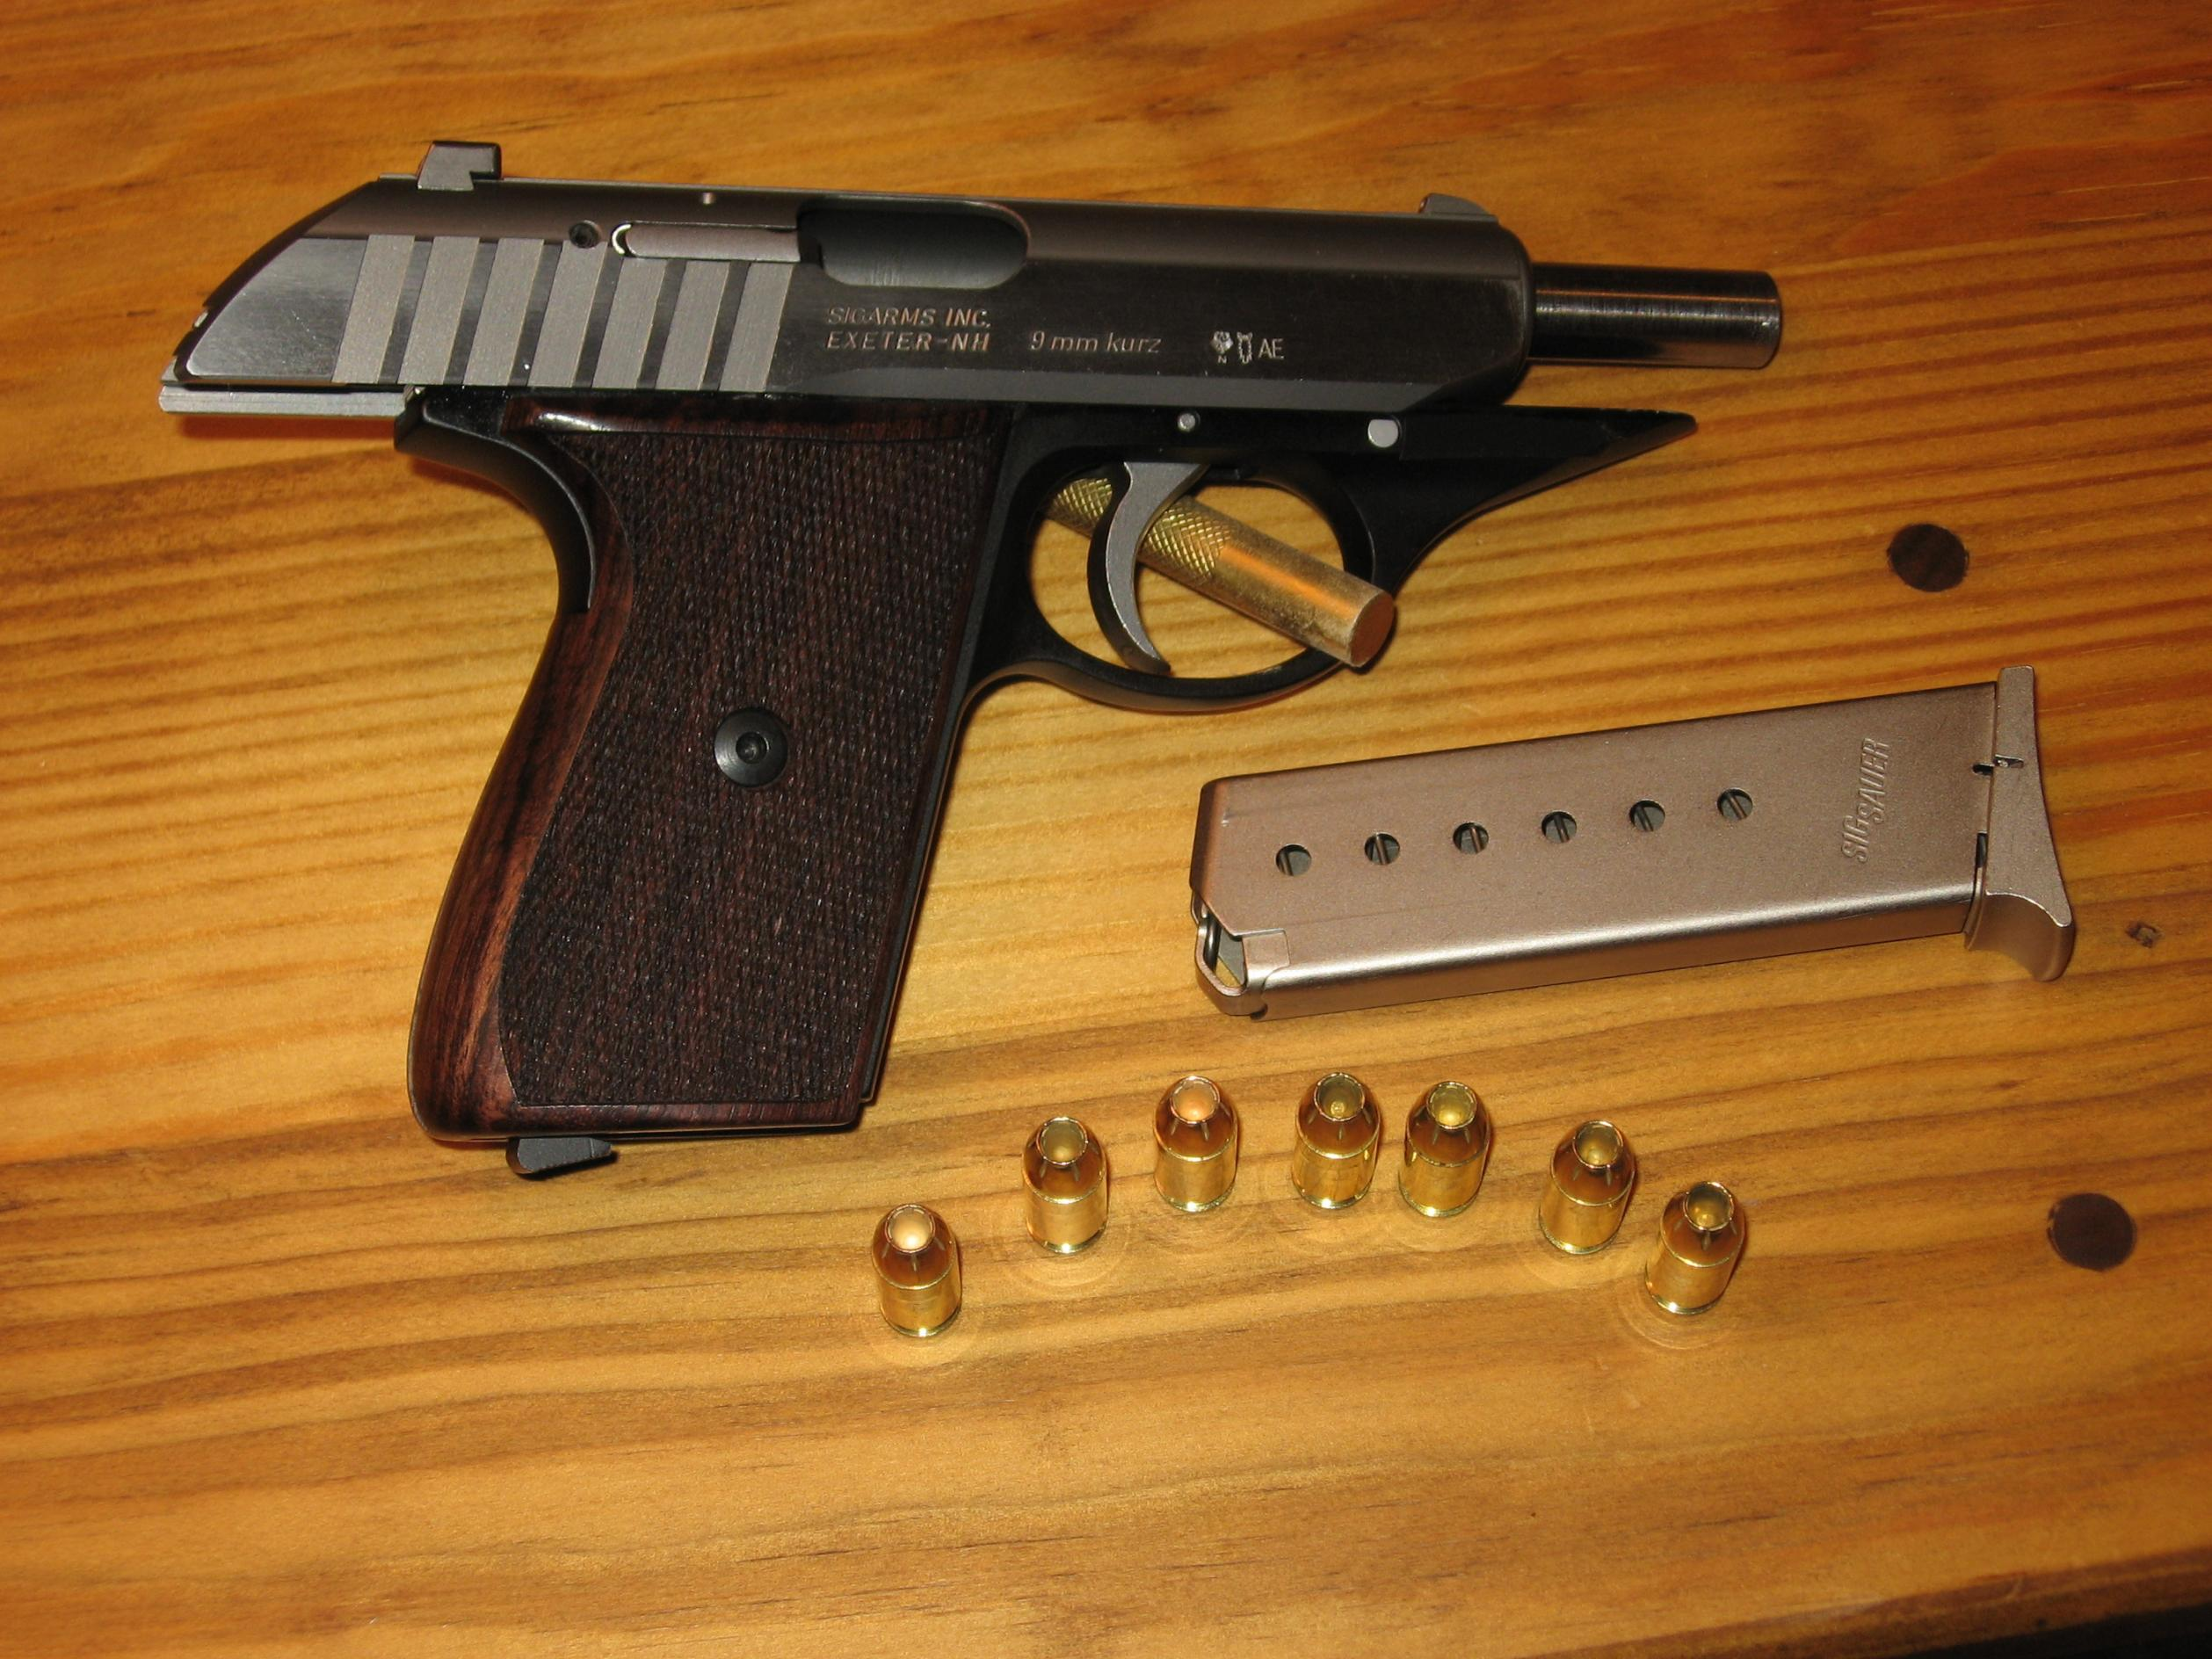 Sig 232 project-No plastic guns for me-img_4419.jpg